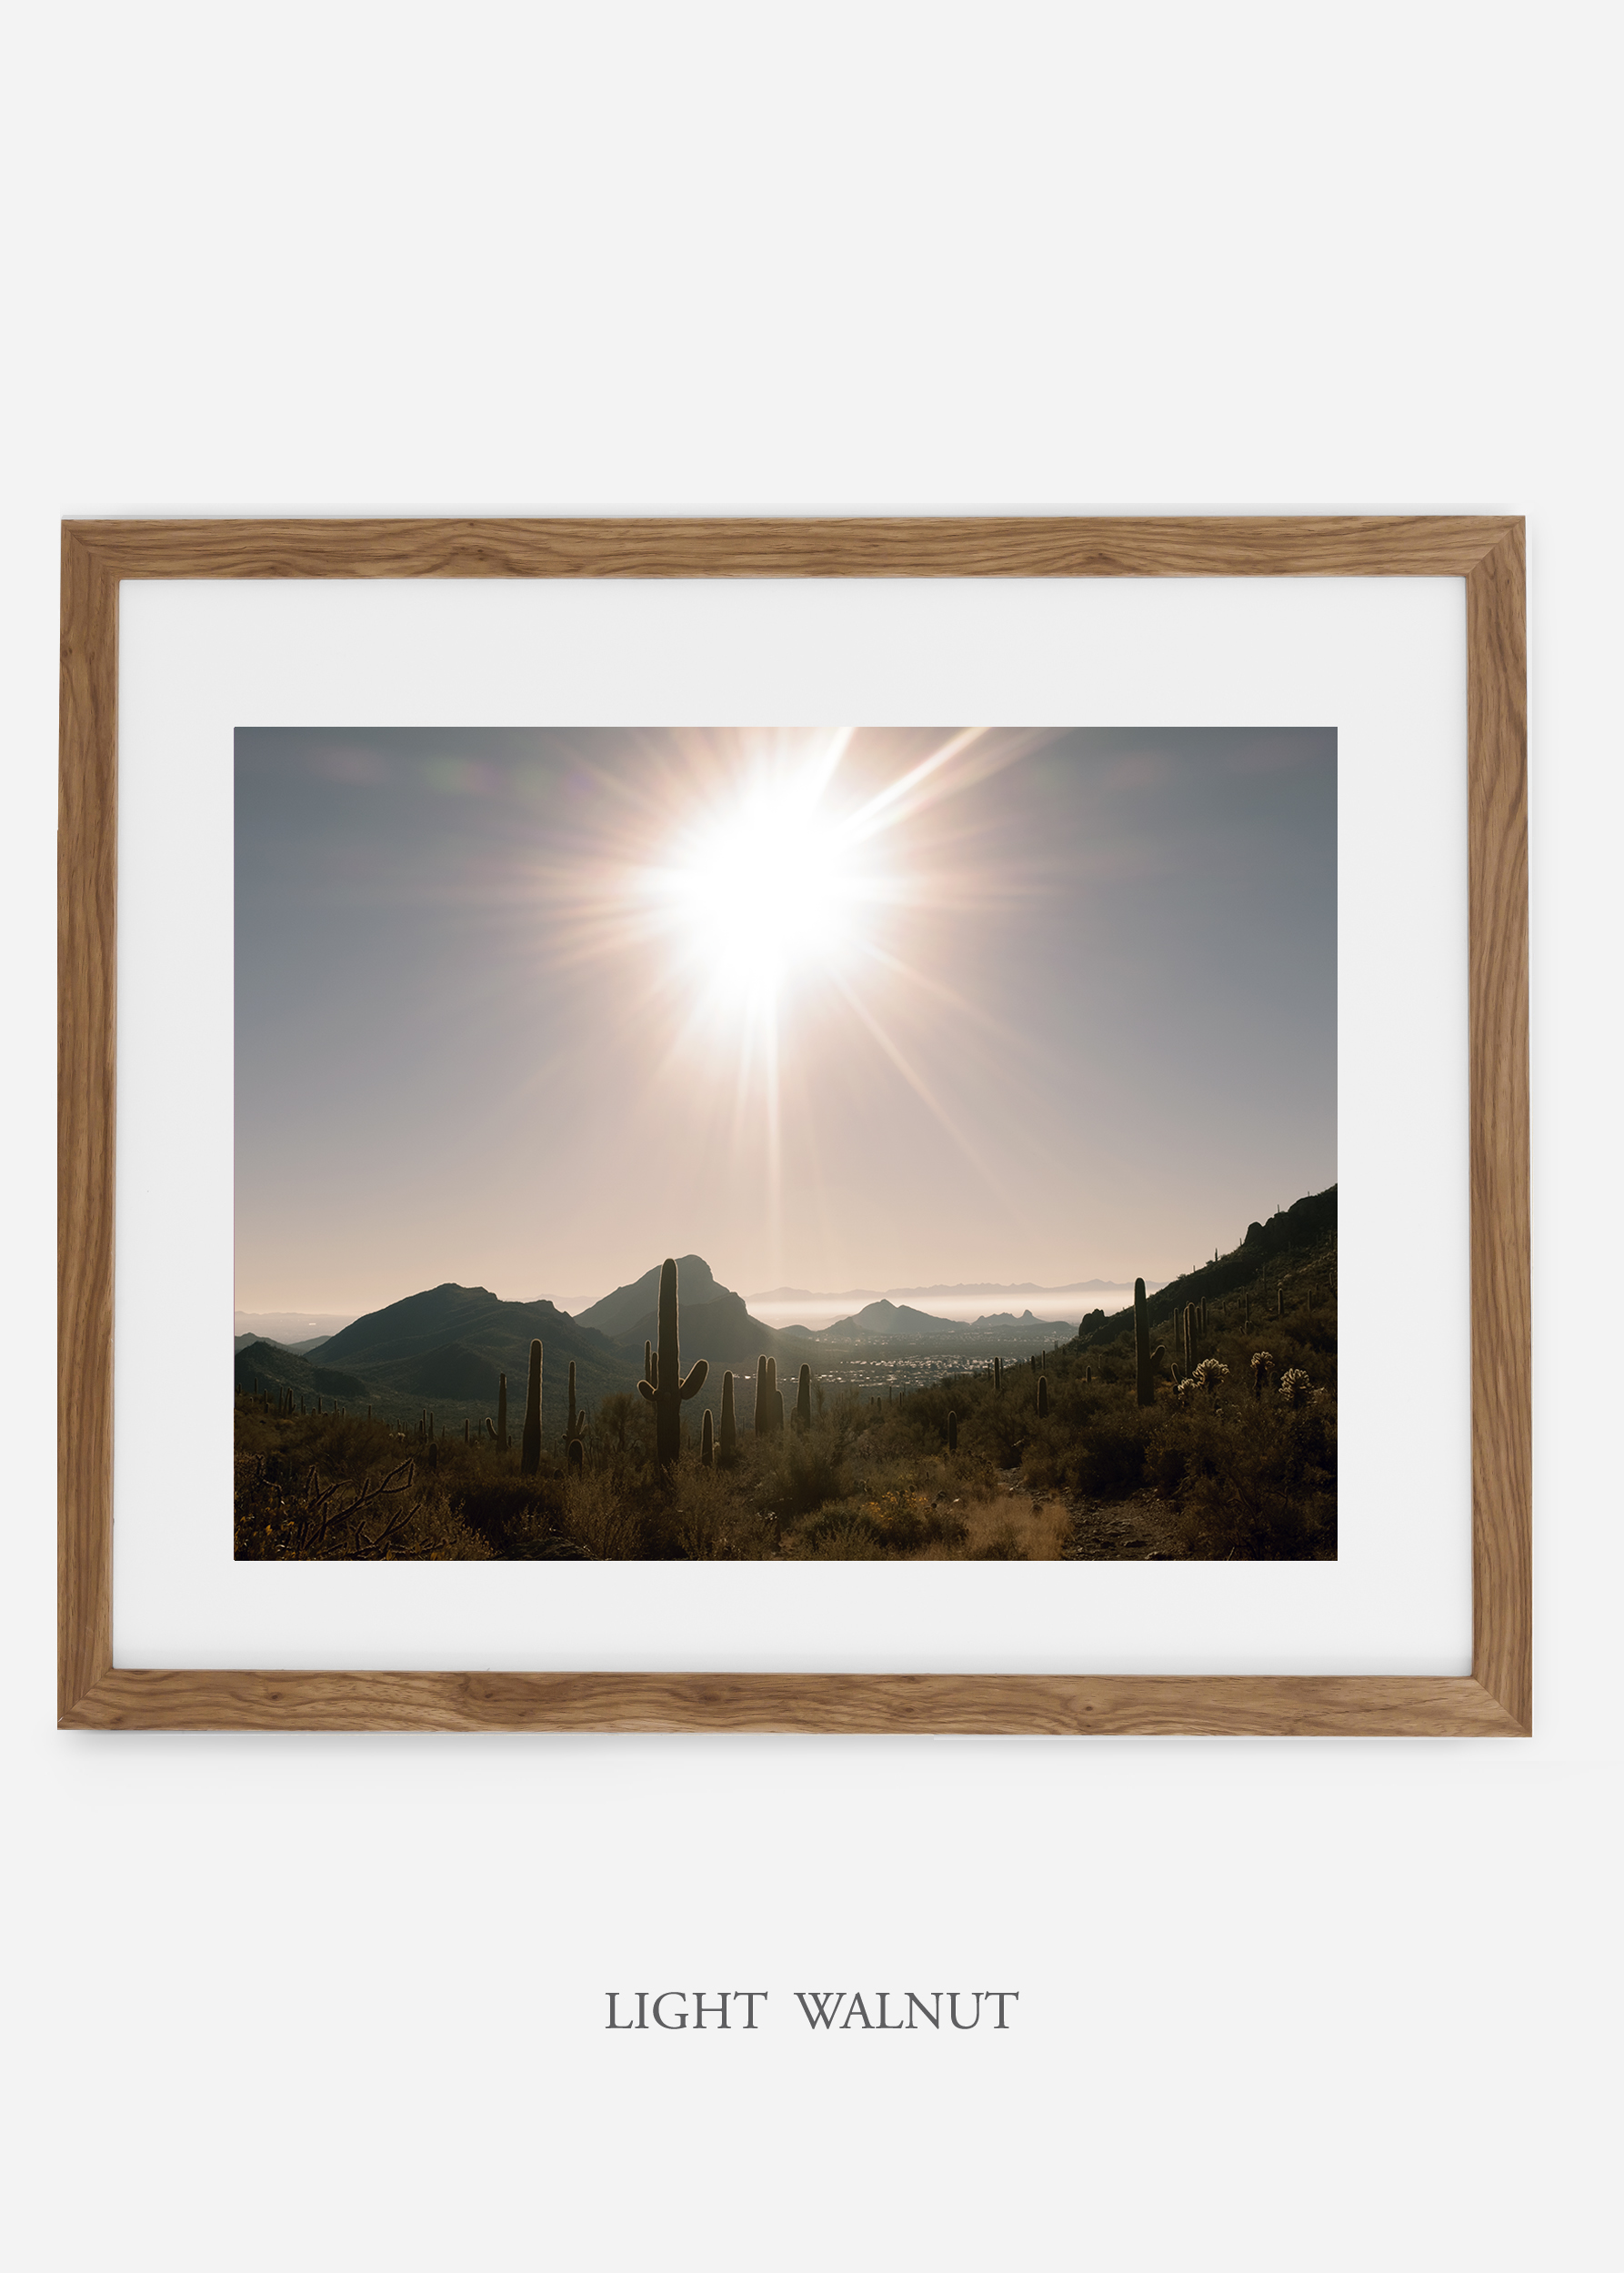 lightwalnutframe-saguaroNo.15-wildercalifornia-art-wallart-cactusprint-homedecor-prints-arizona-botanical-artwork-interiordesign.jpg